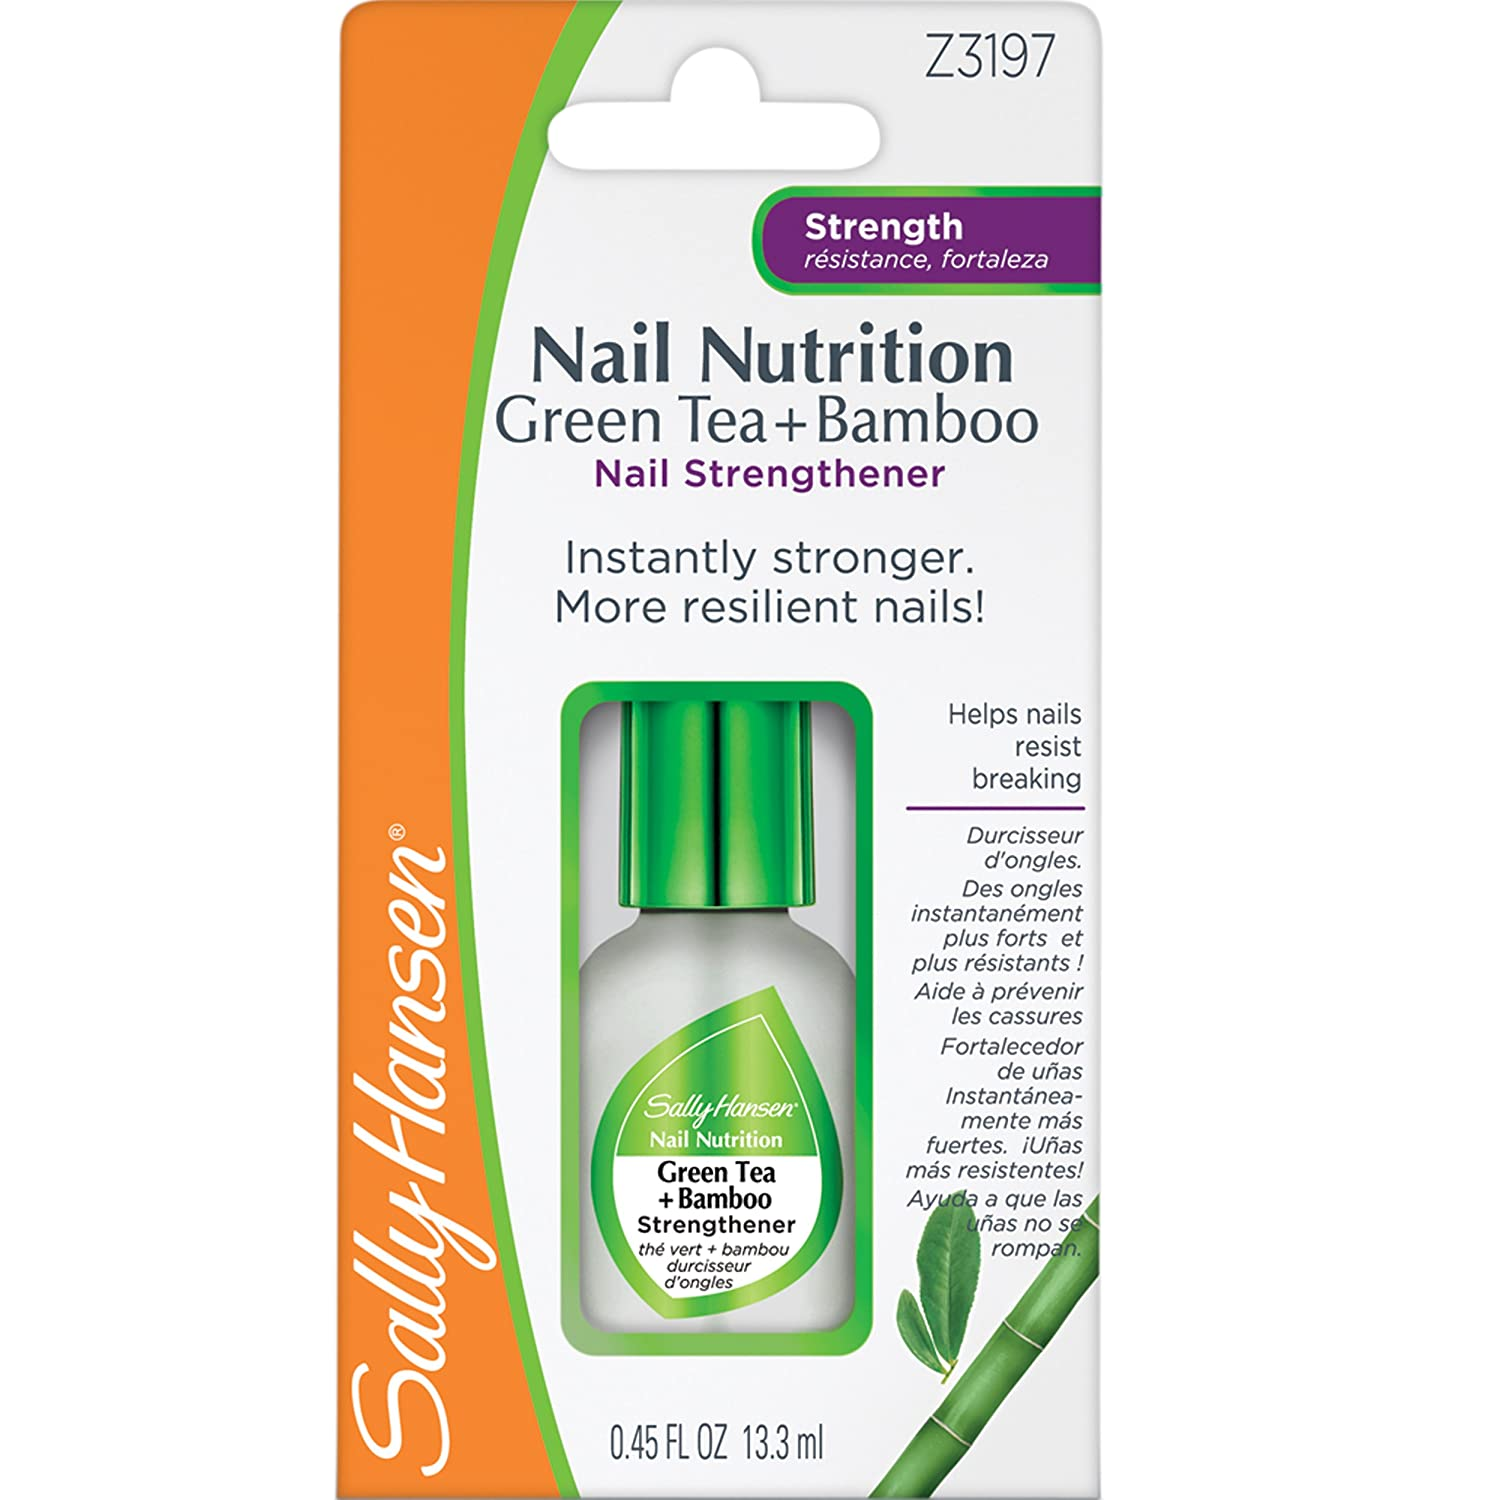 Forté Plus Nail Strengthening System